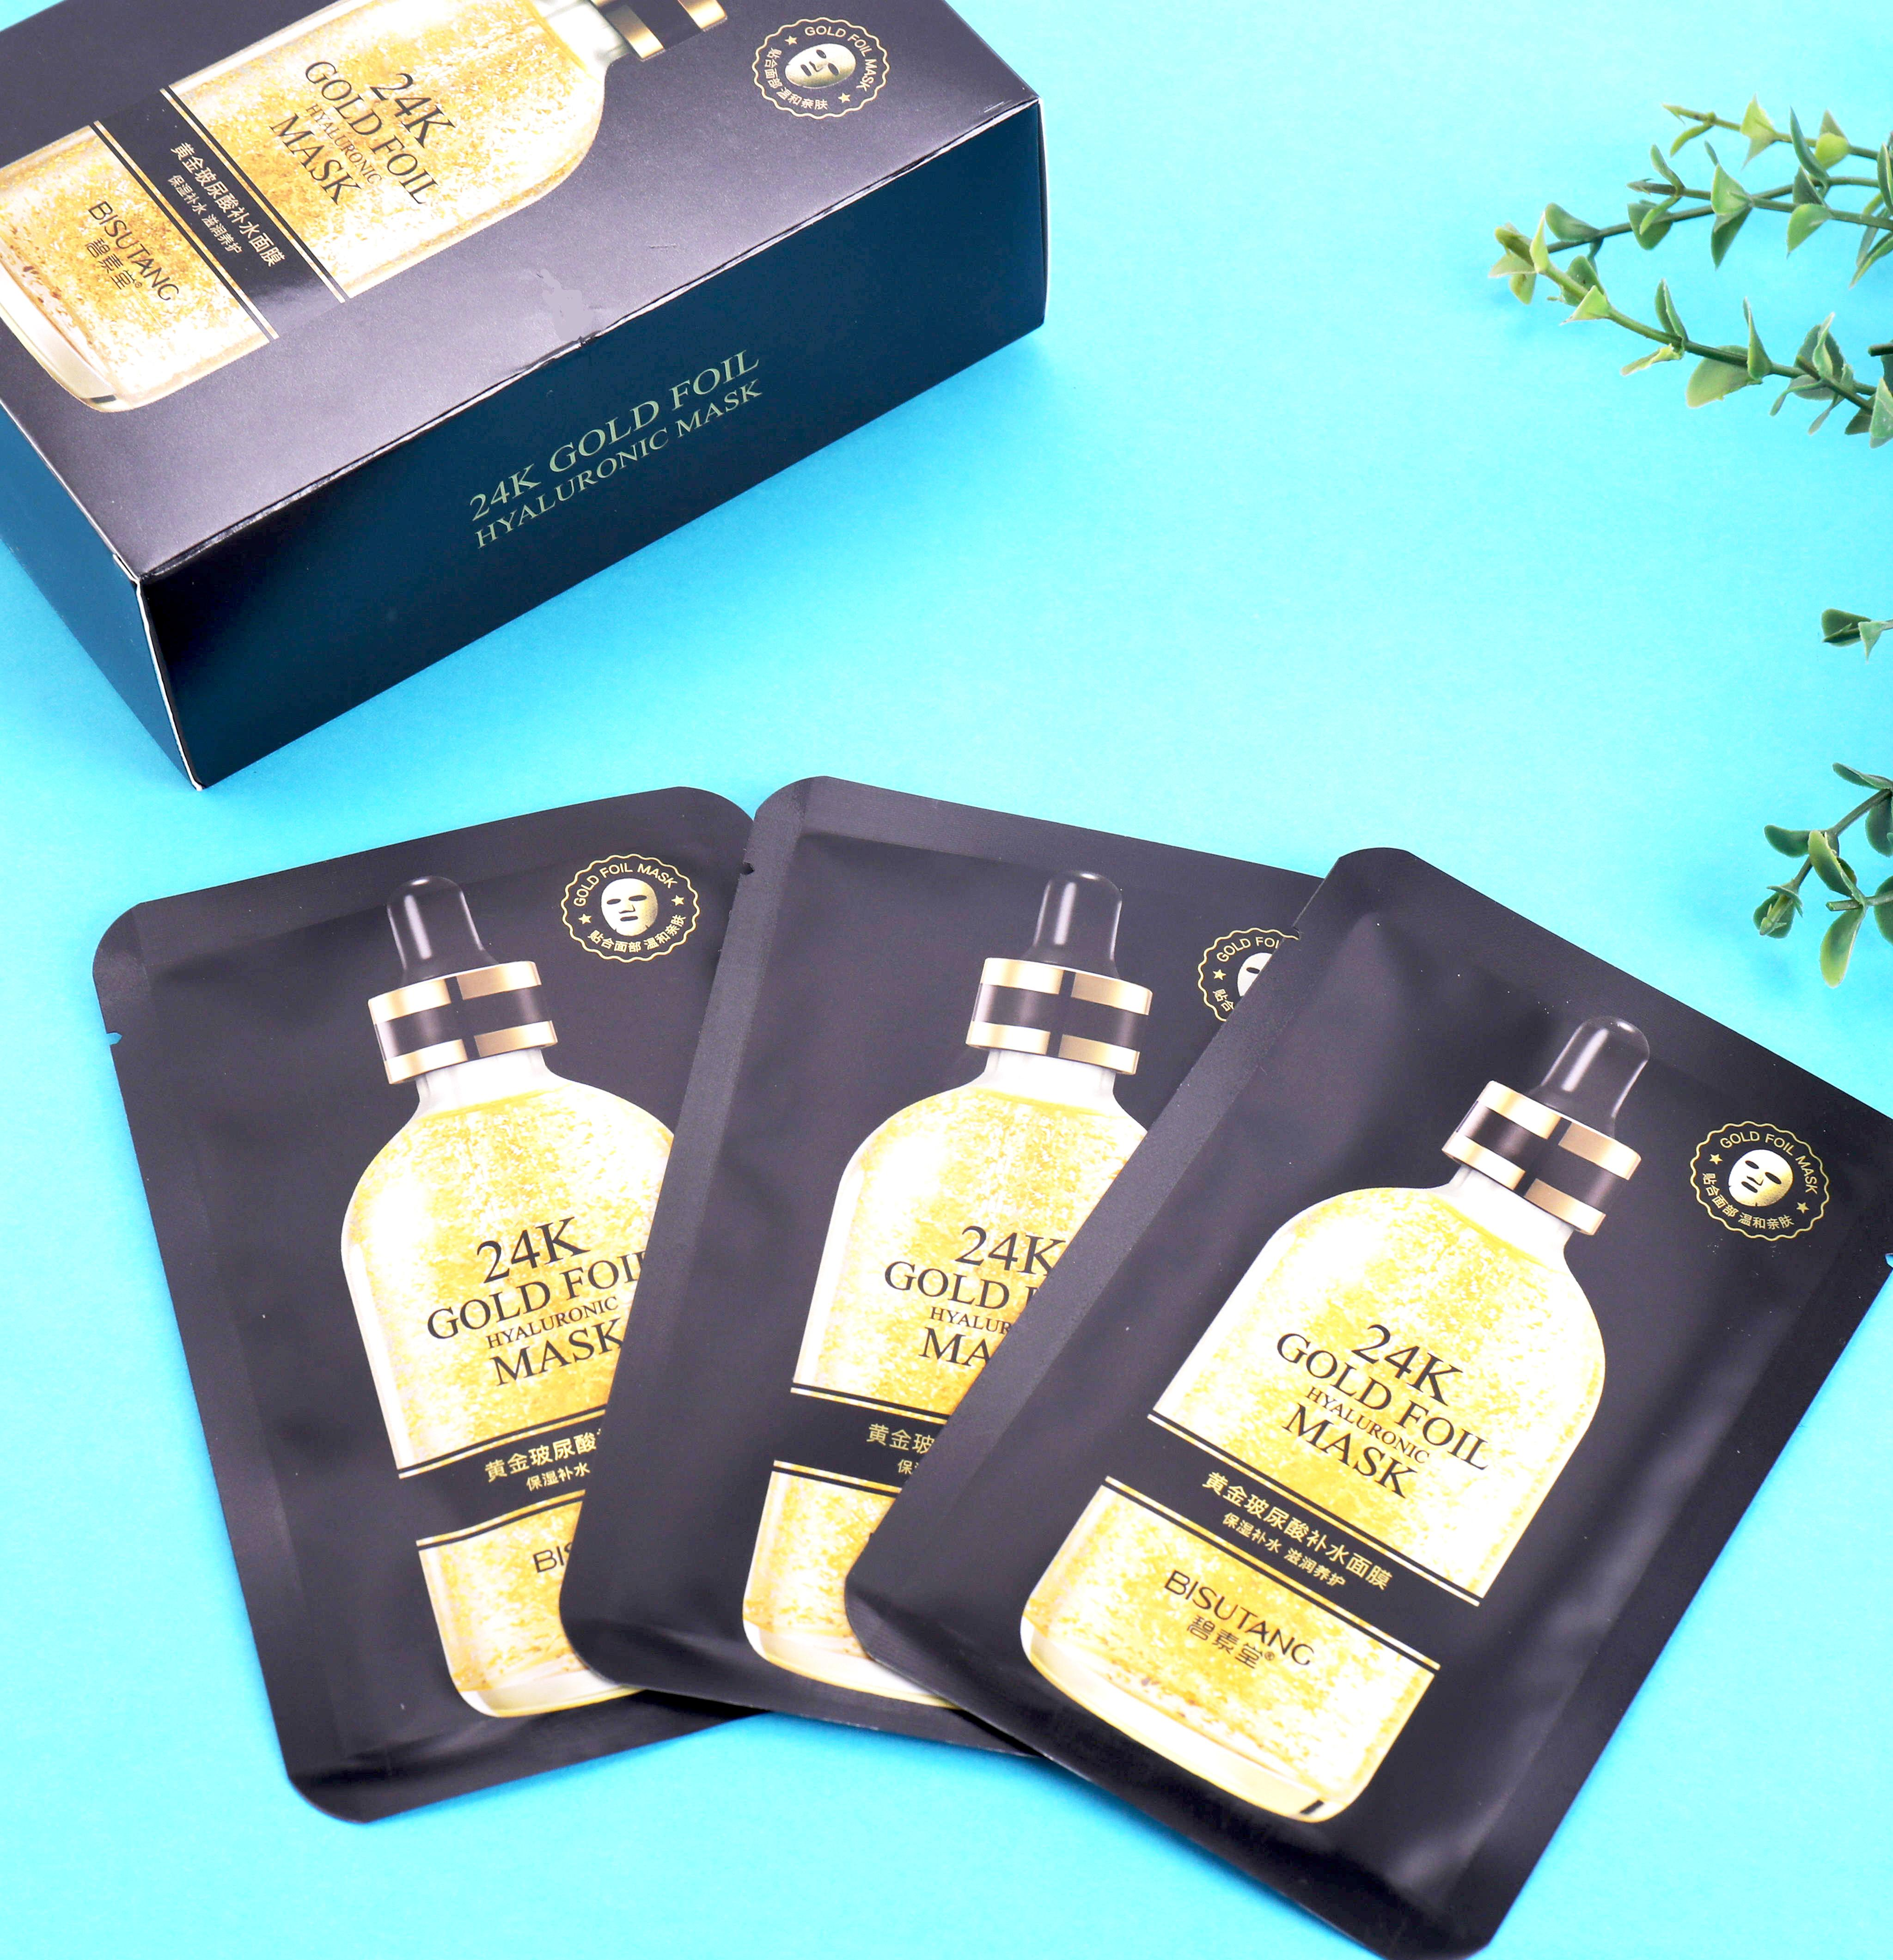 24k Gold Hyaluronic Anti-Aging Black Face Skin Care Strengthen Firming remove wrinkles Facial Mascarilla Wholesale Repair face masks